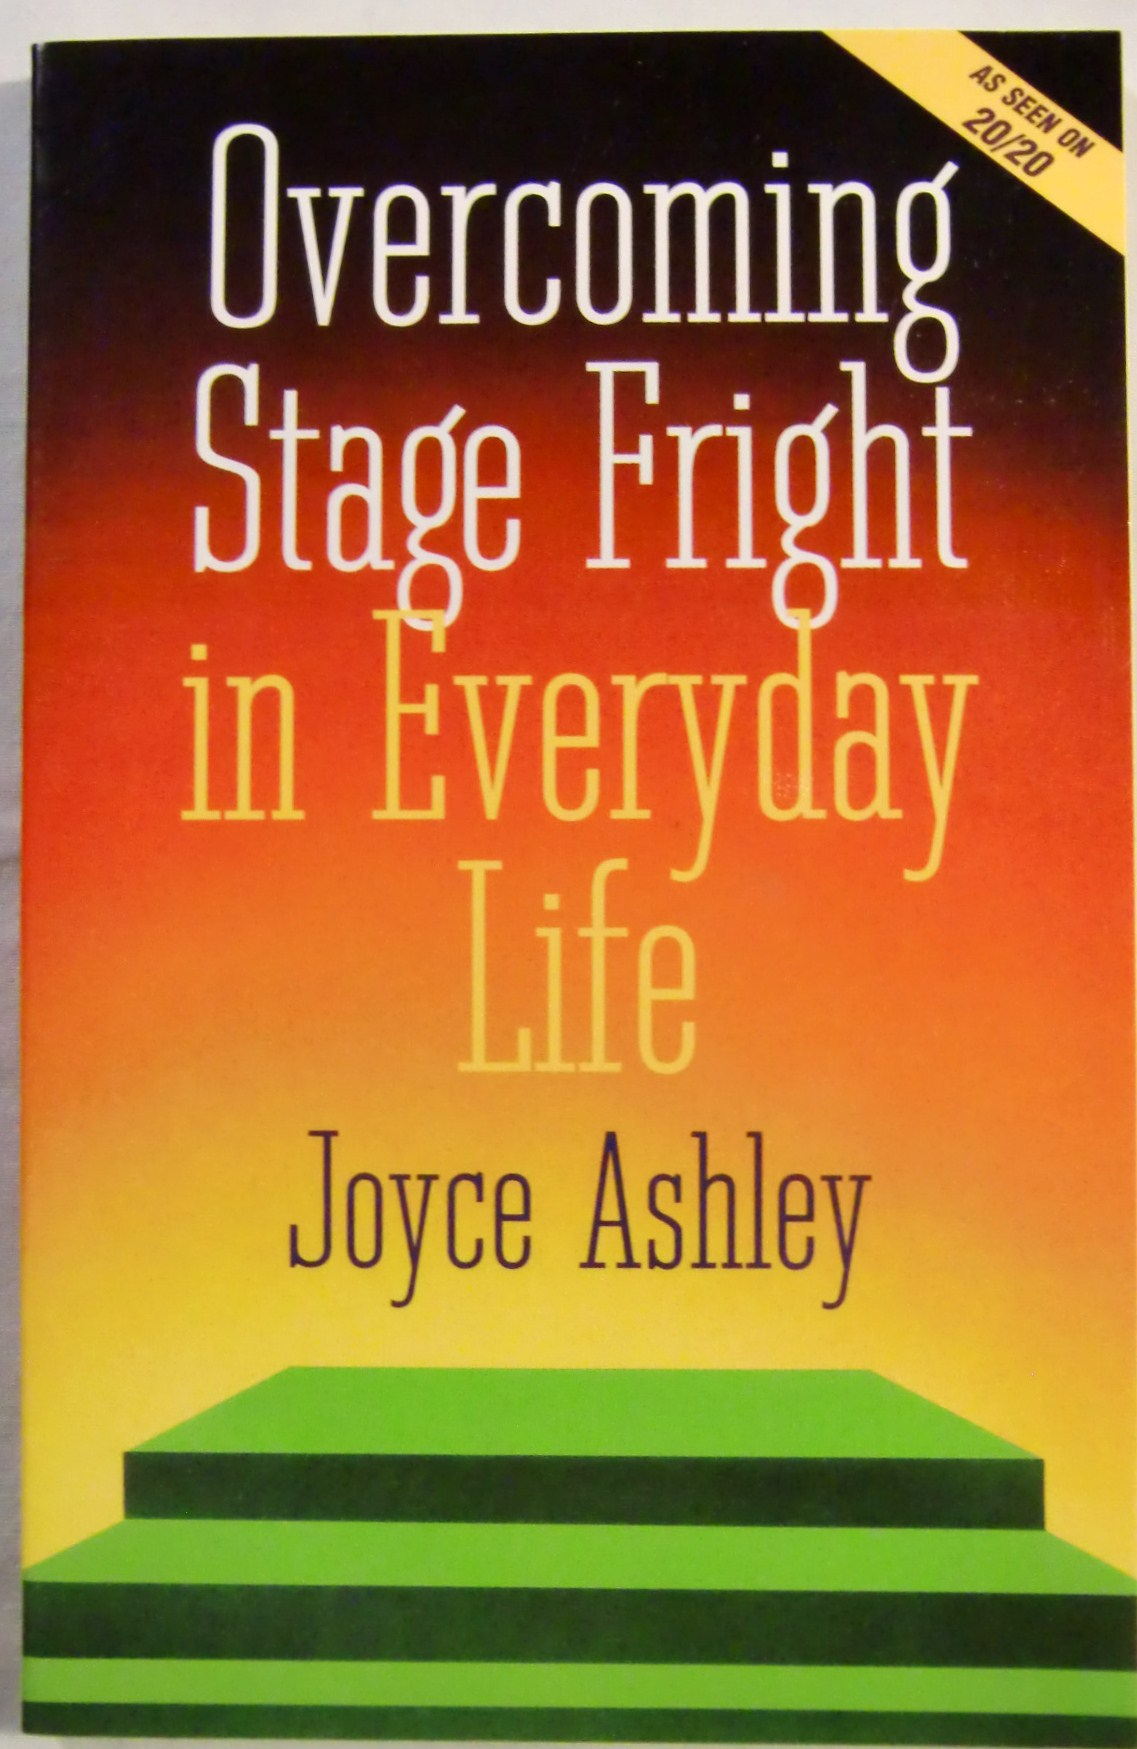 Overcoming Stage Fright in Everyday Life